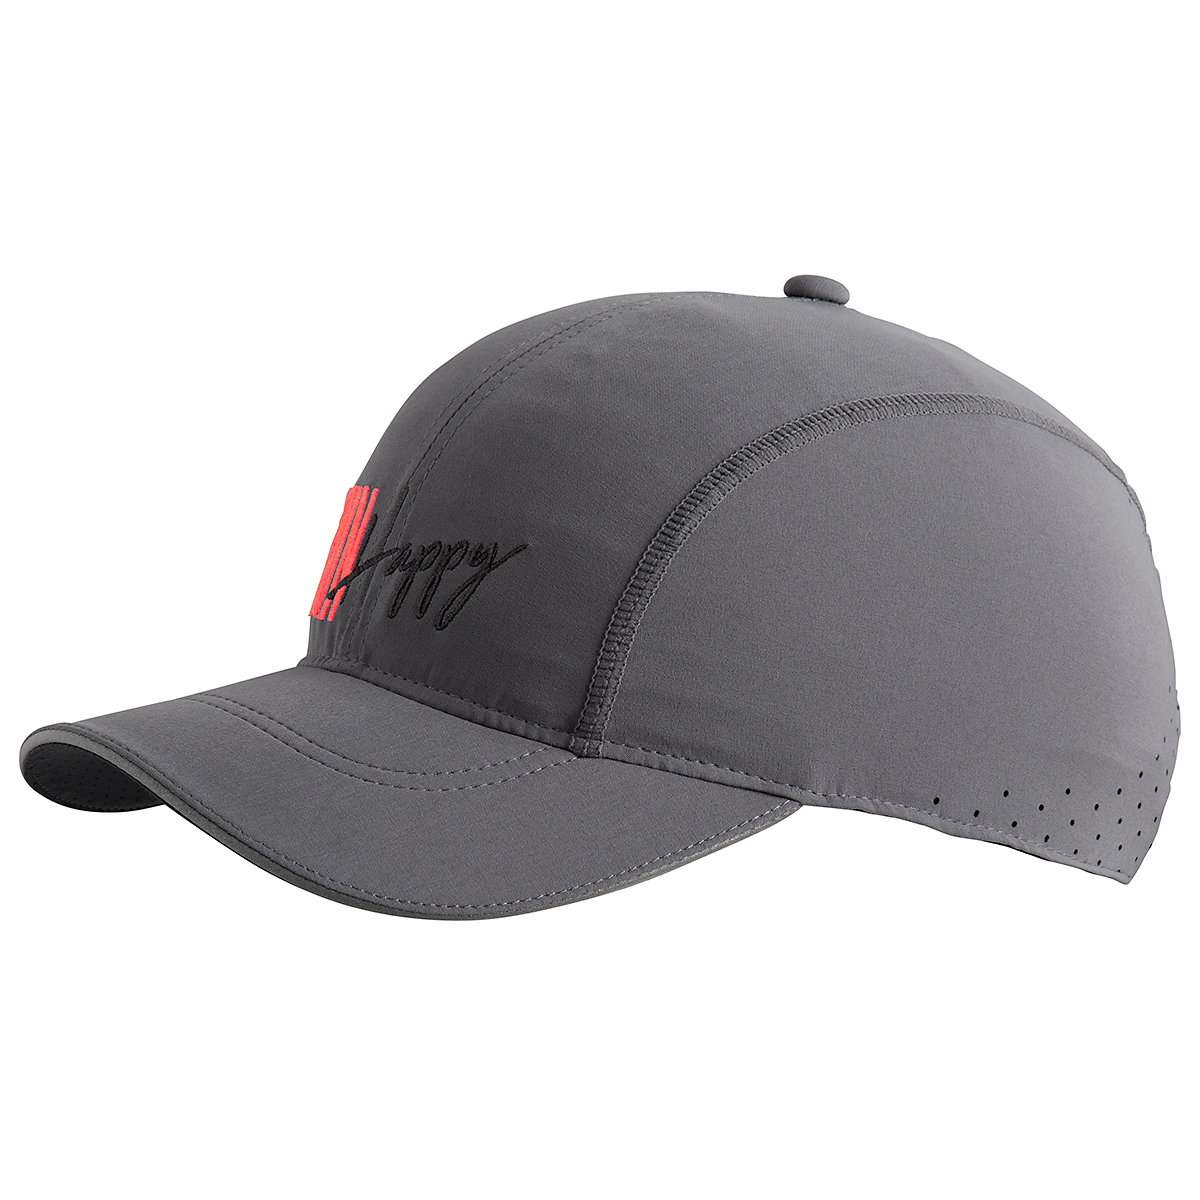 Brooks Chaser Hat - Color: Steel/Run Happy - Size: One Size, Steel/Run Happy, large, image 1